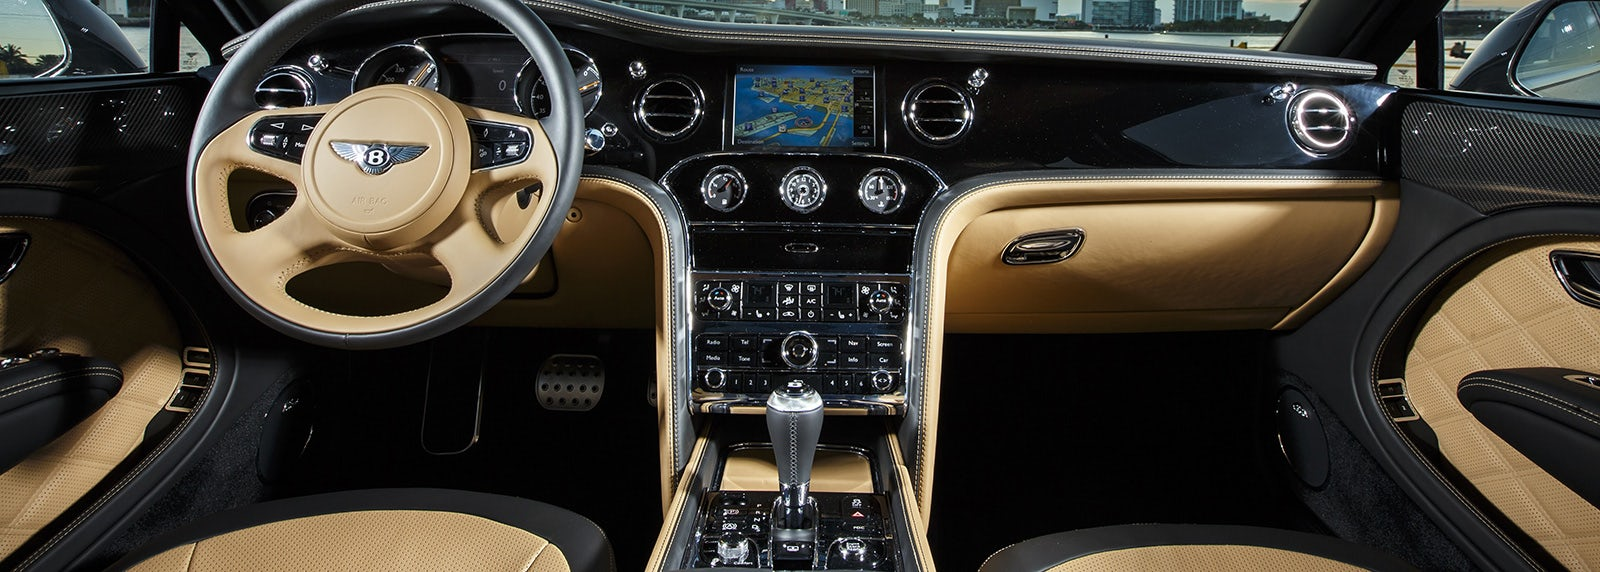 Top 10 cars with the most luxurious interiors | carwow